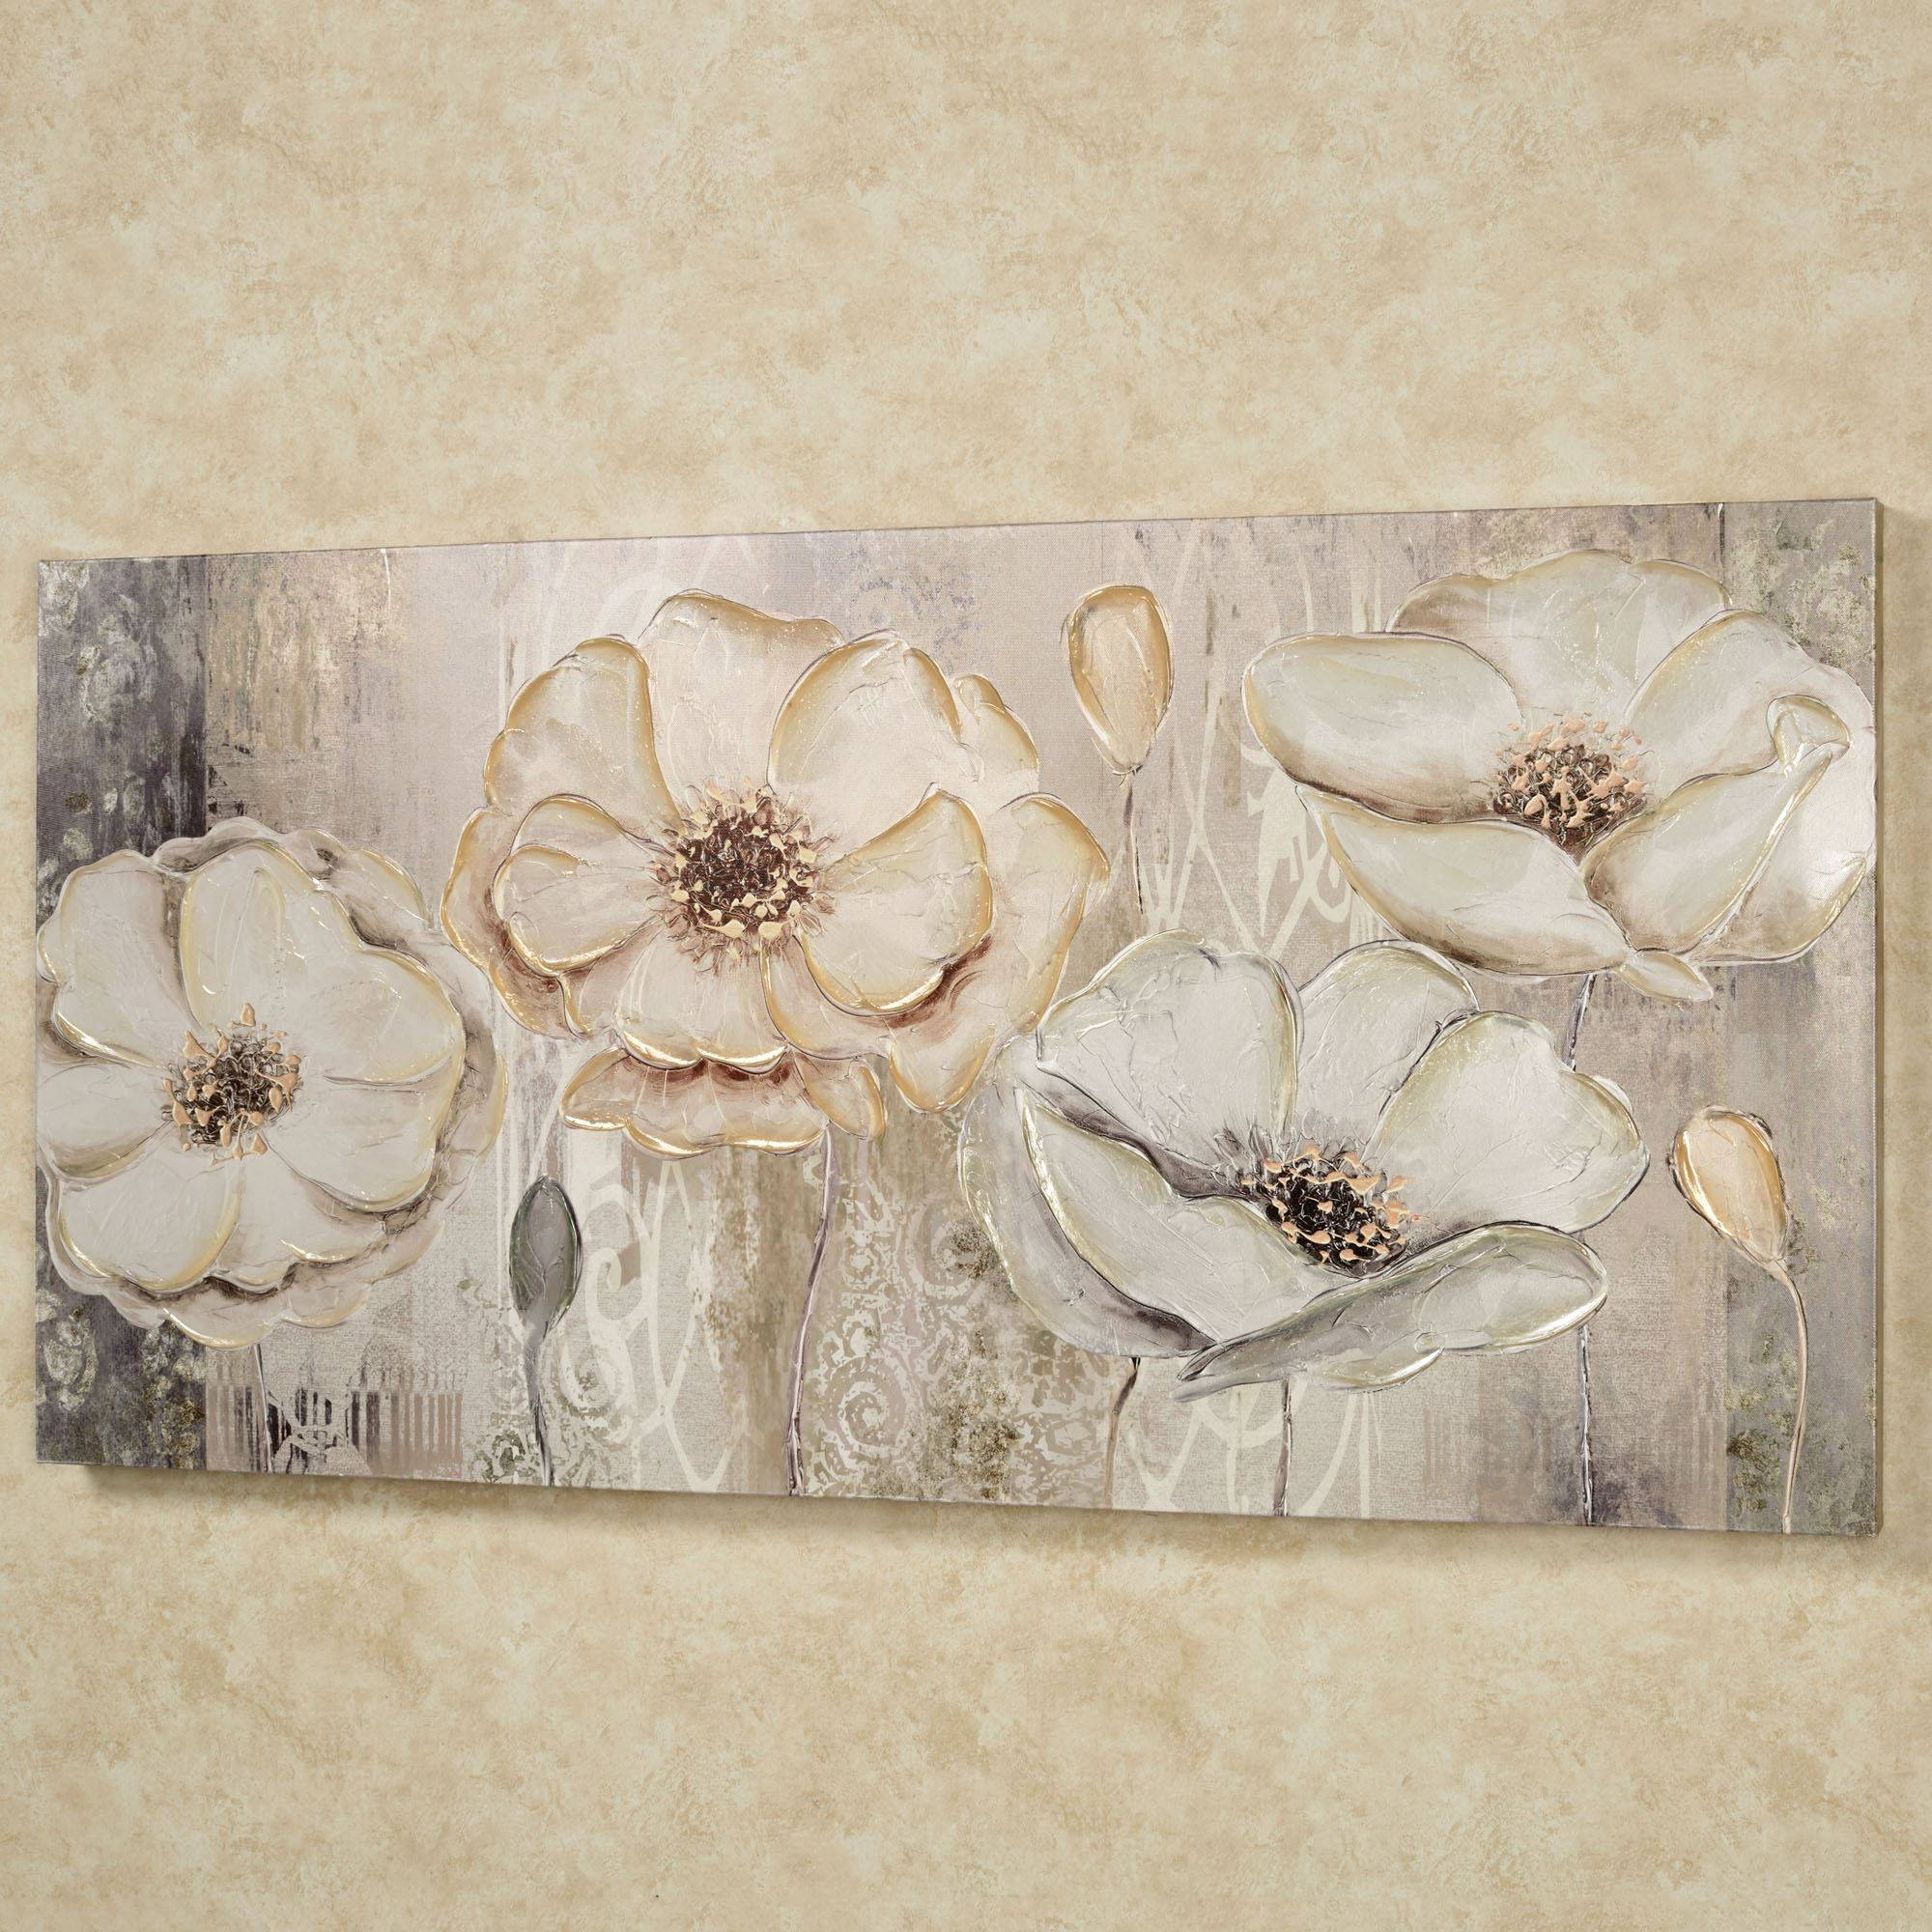 Floral Elegance Canvas Wall Art Within Most Popular Floral Wall Art Canvas (View 6 of 20)